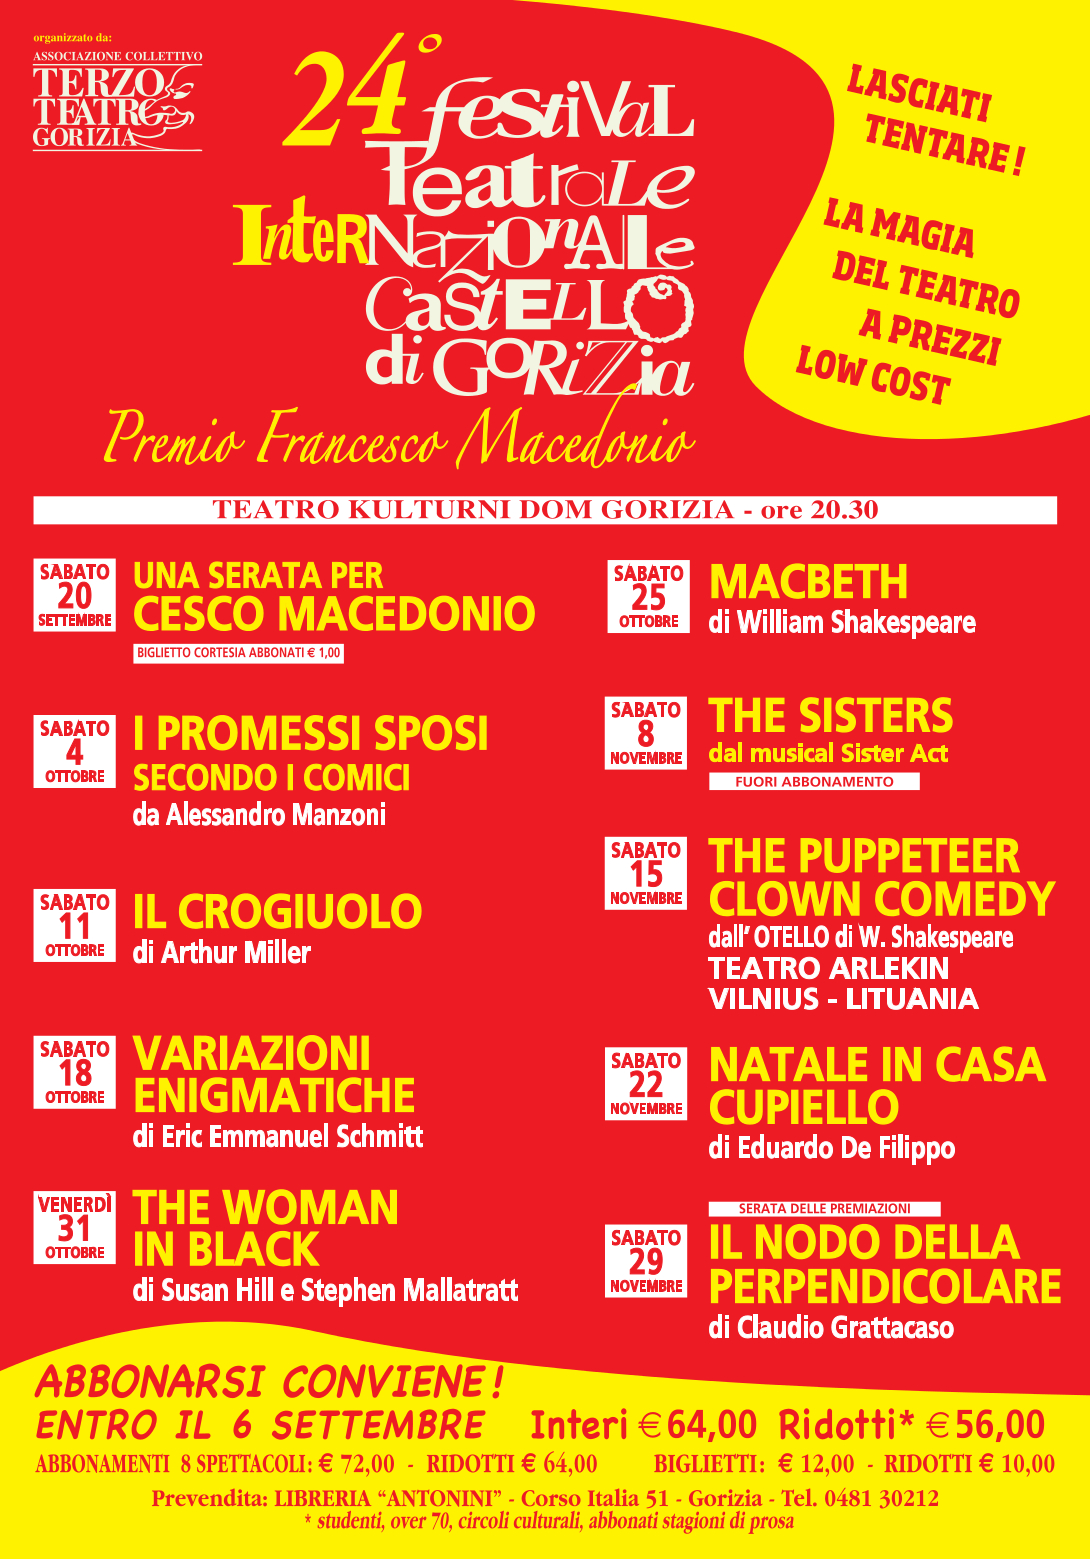 THE PUPPETEER clown comedy dall'OTELLO